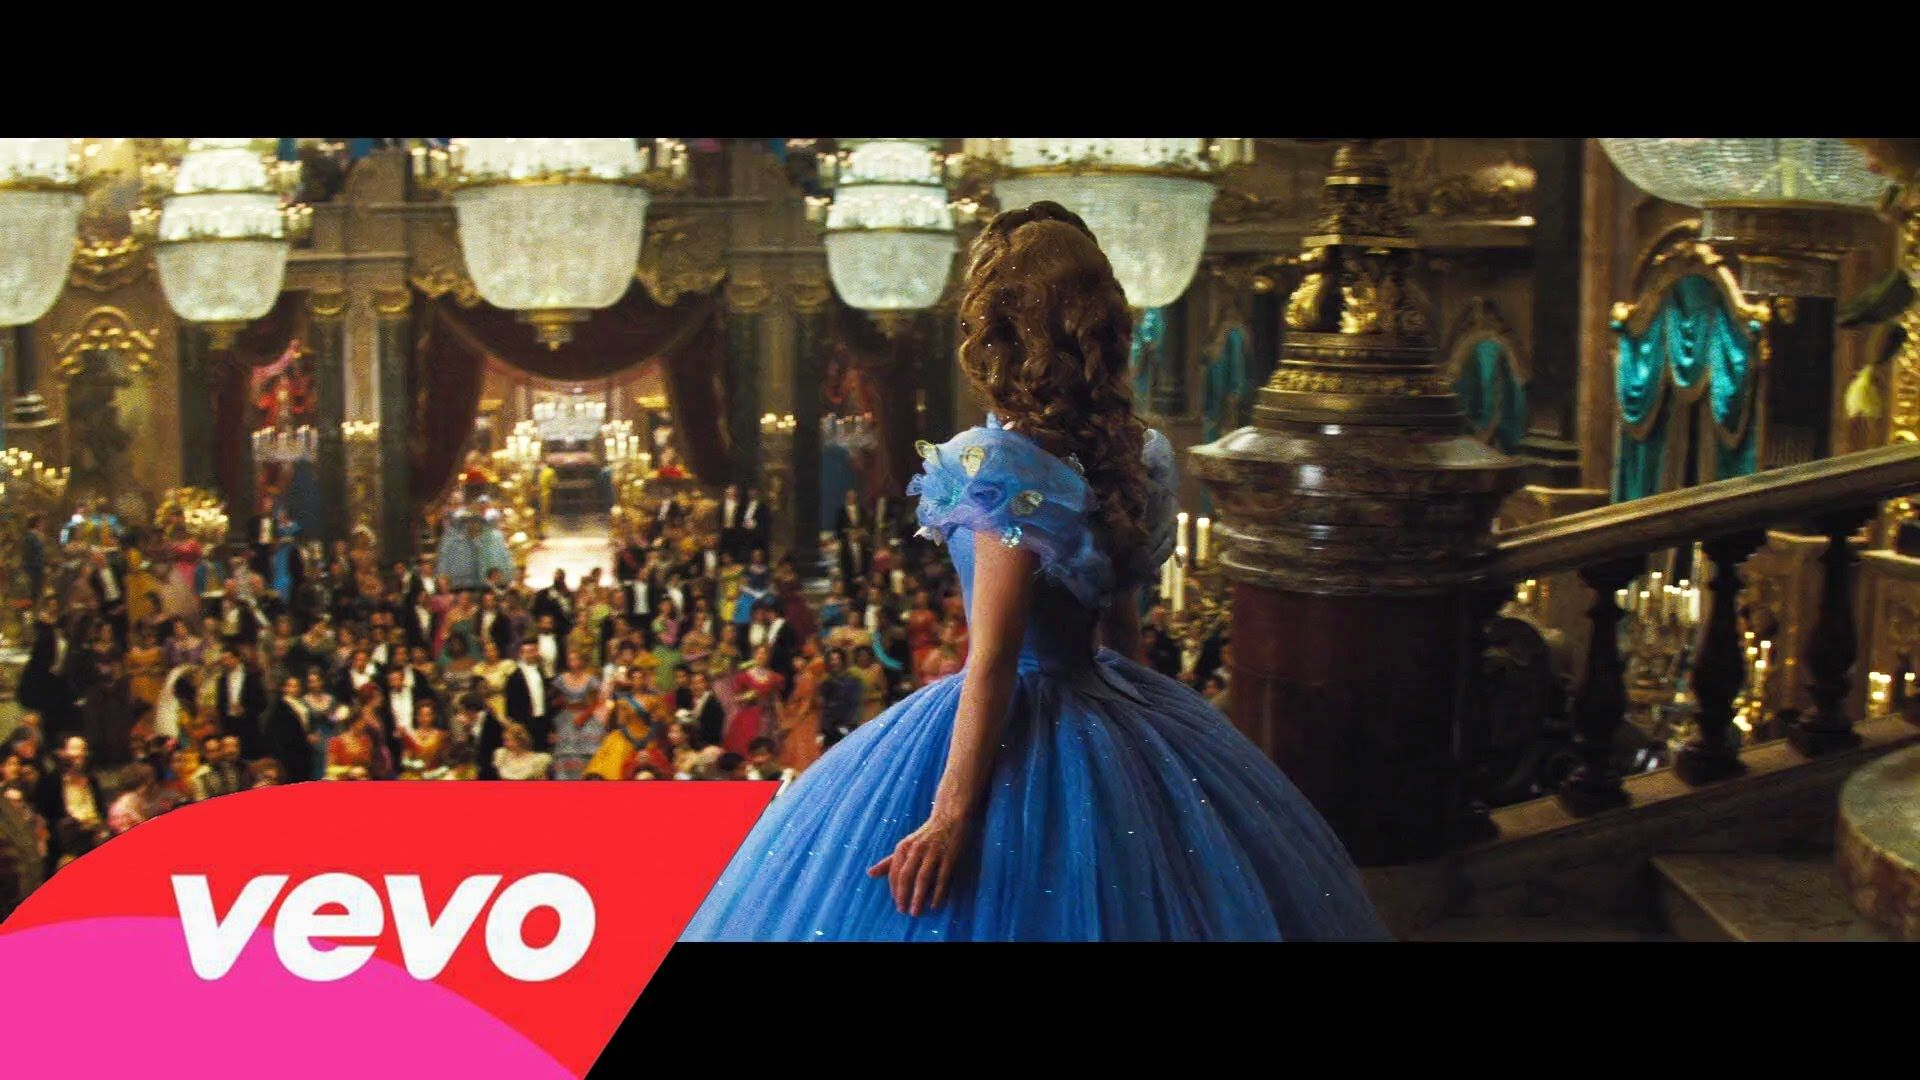 Cinderella lavenderus blue dilly dilly official video hd